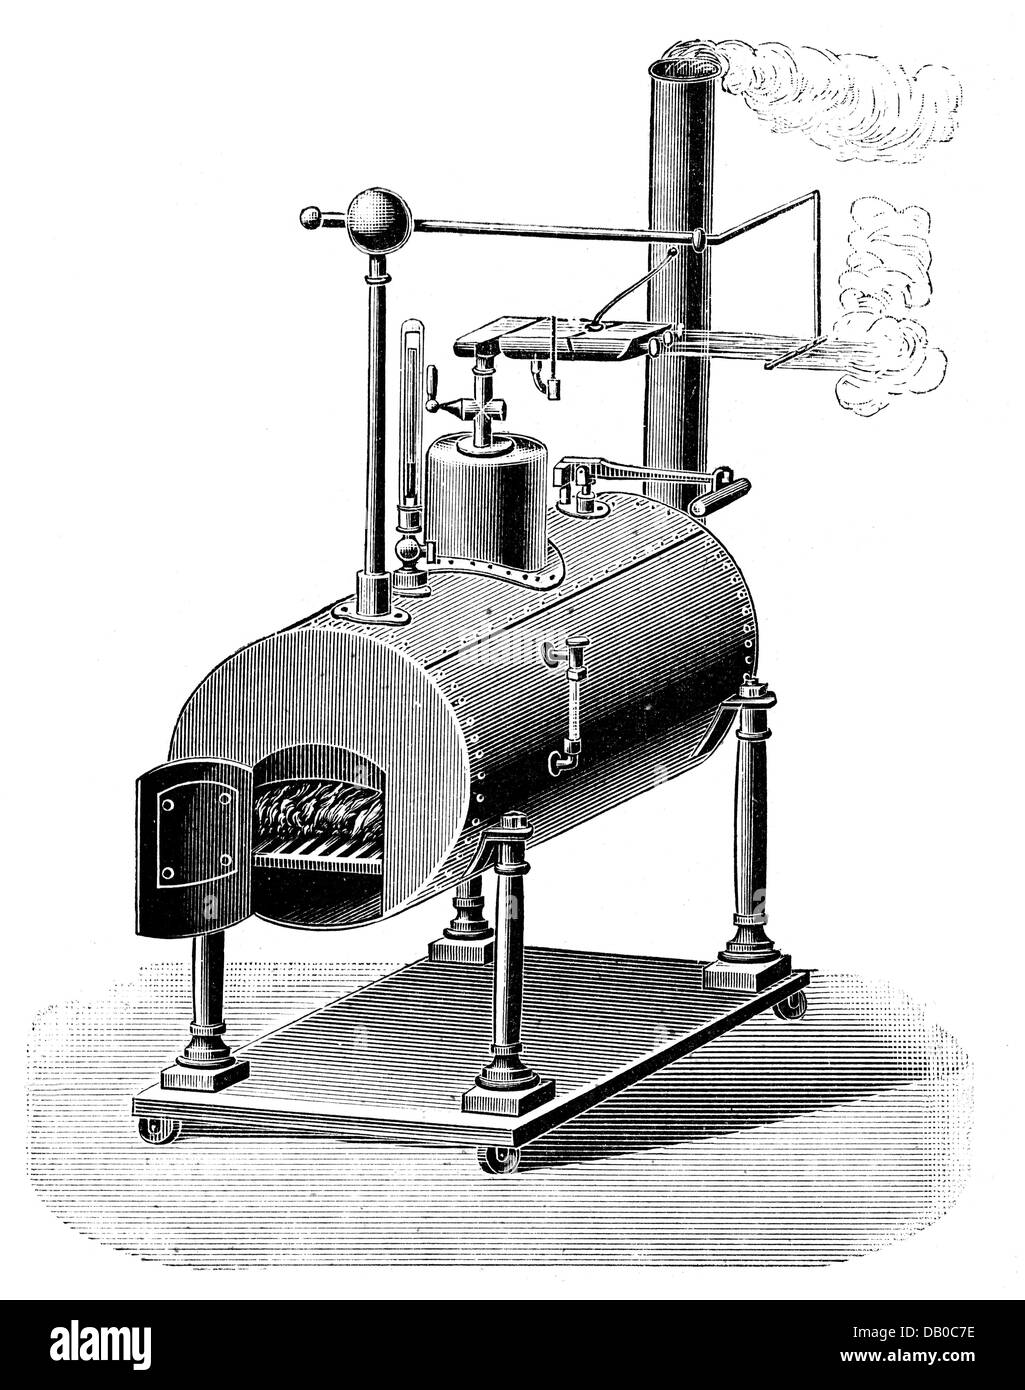 energy, electricity, steam-driven electric machine, invented by William Armstrong (1810 - 1900), 1840, Additional - Stock Image